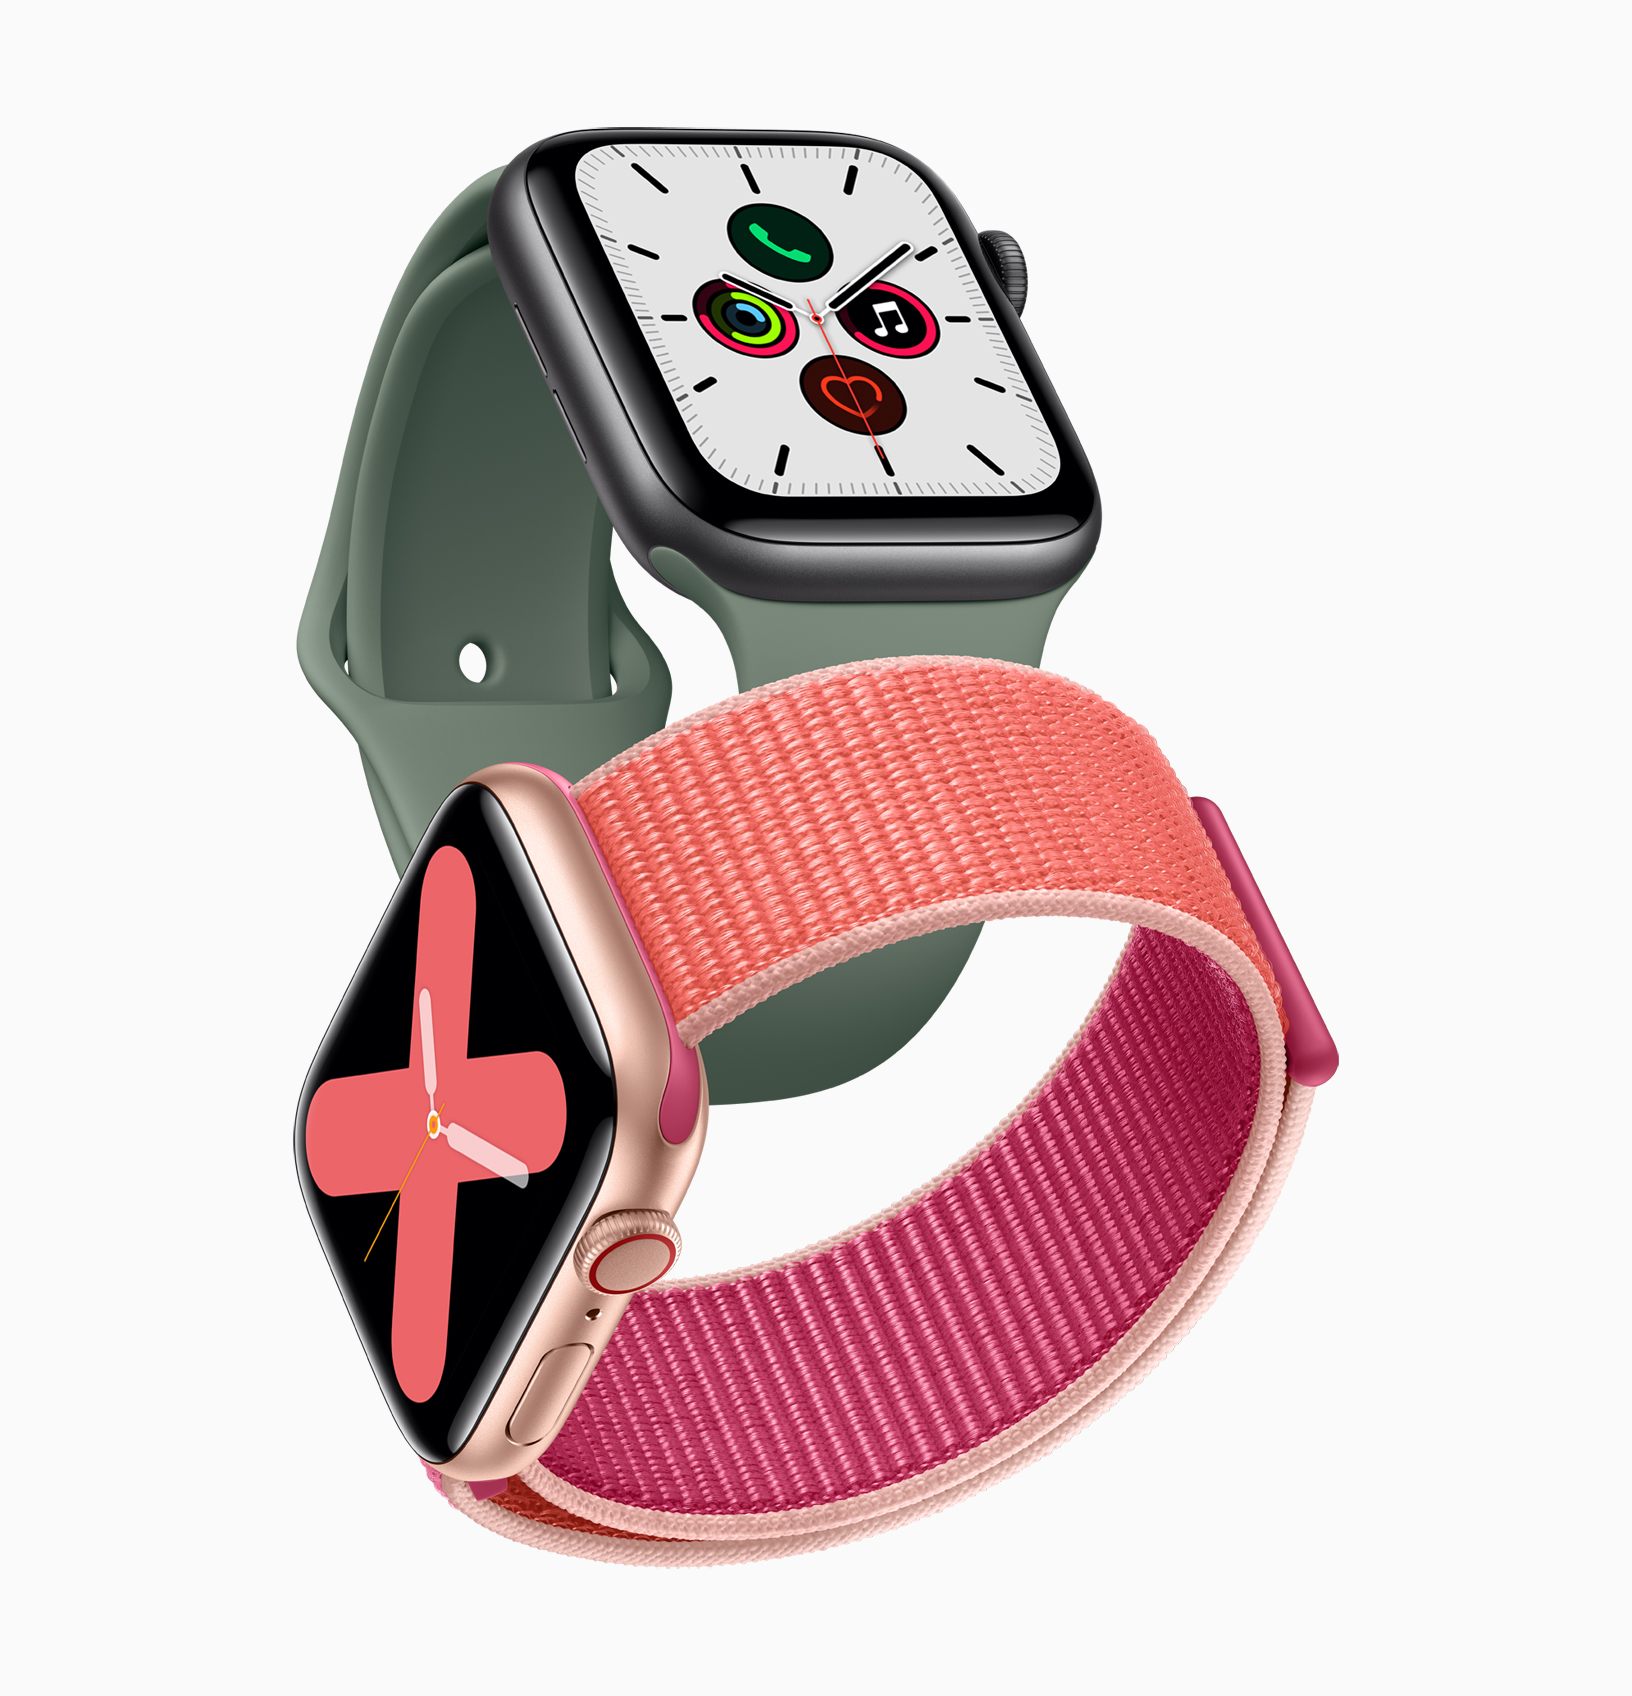 Apple Seeds Initial Beta of watchOS 6.1 to Developers